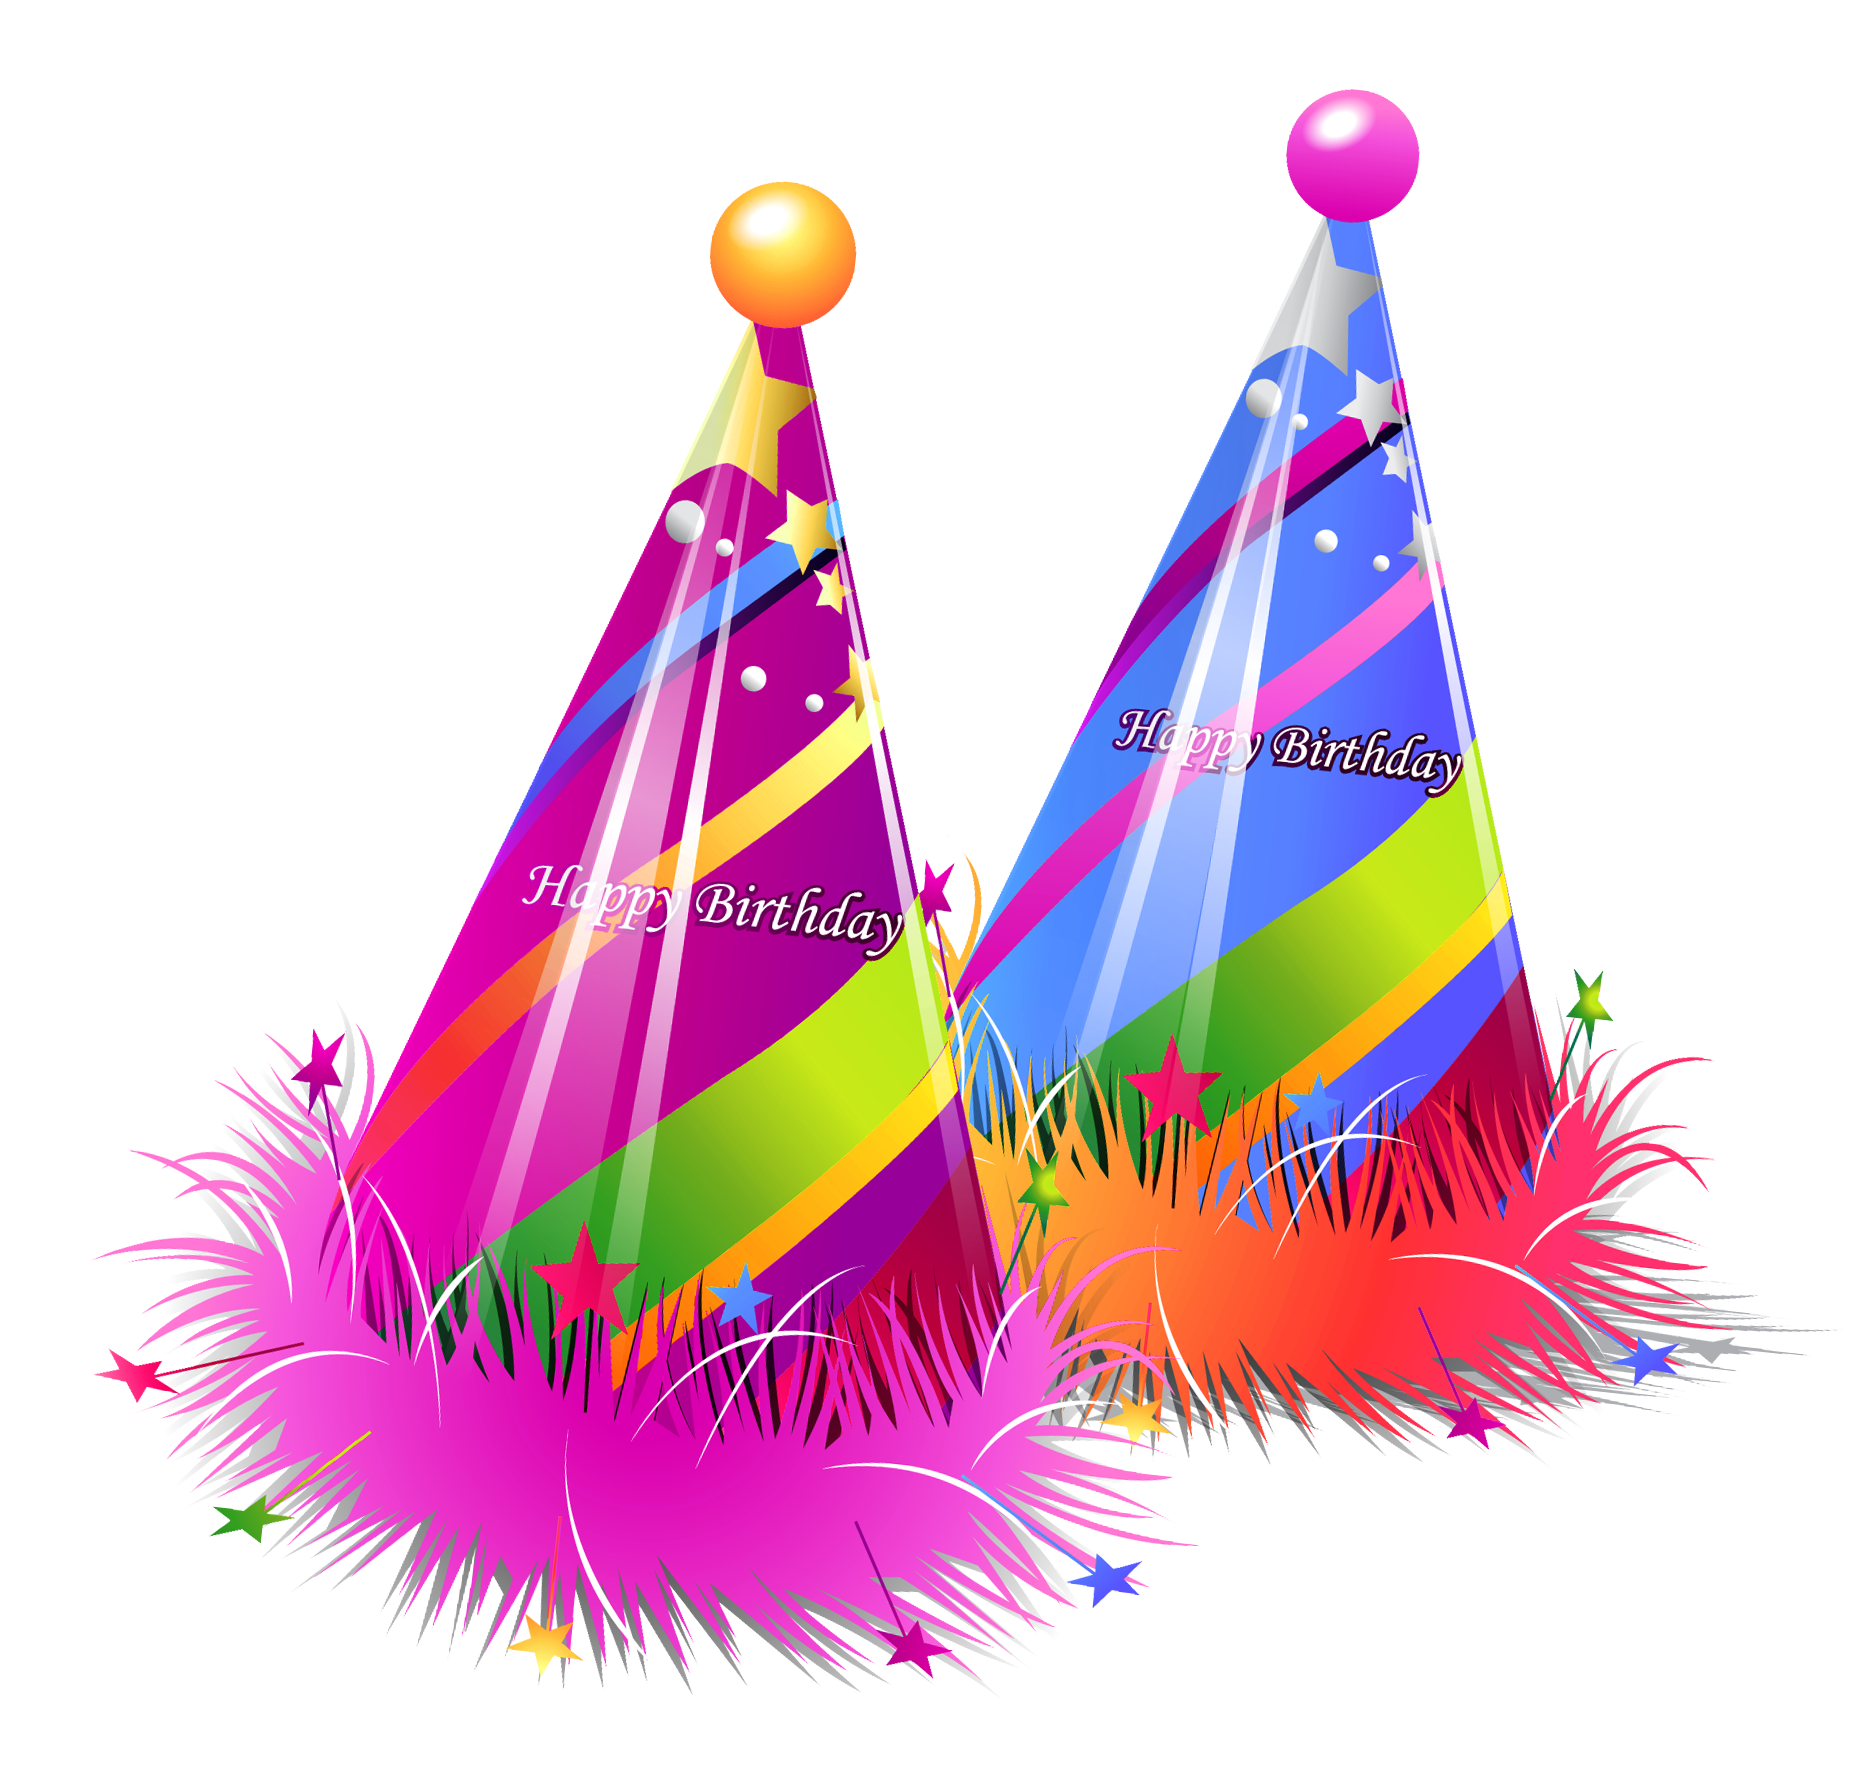 Birthday party png. Happy hats transparent clipart